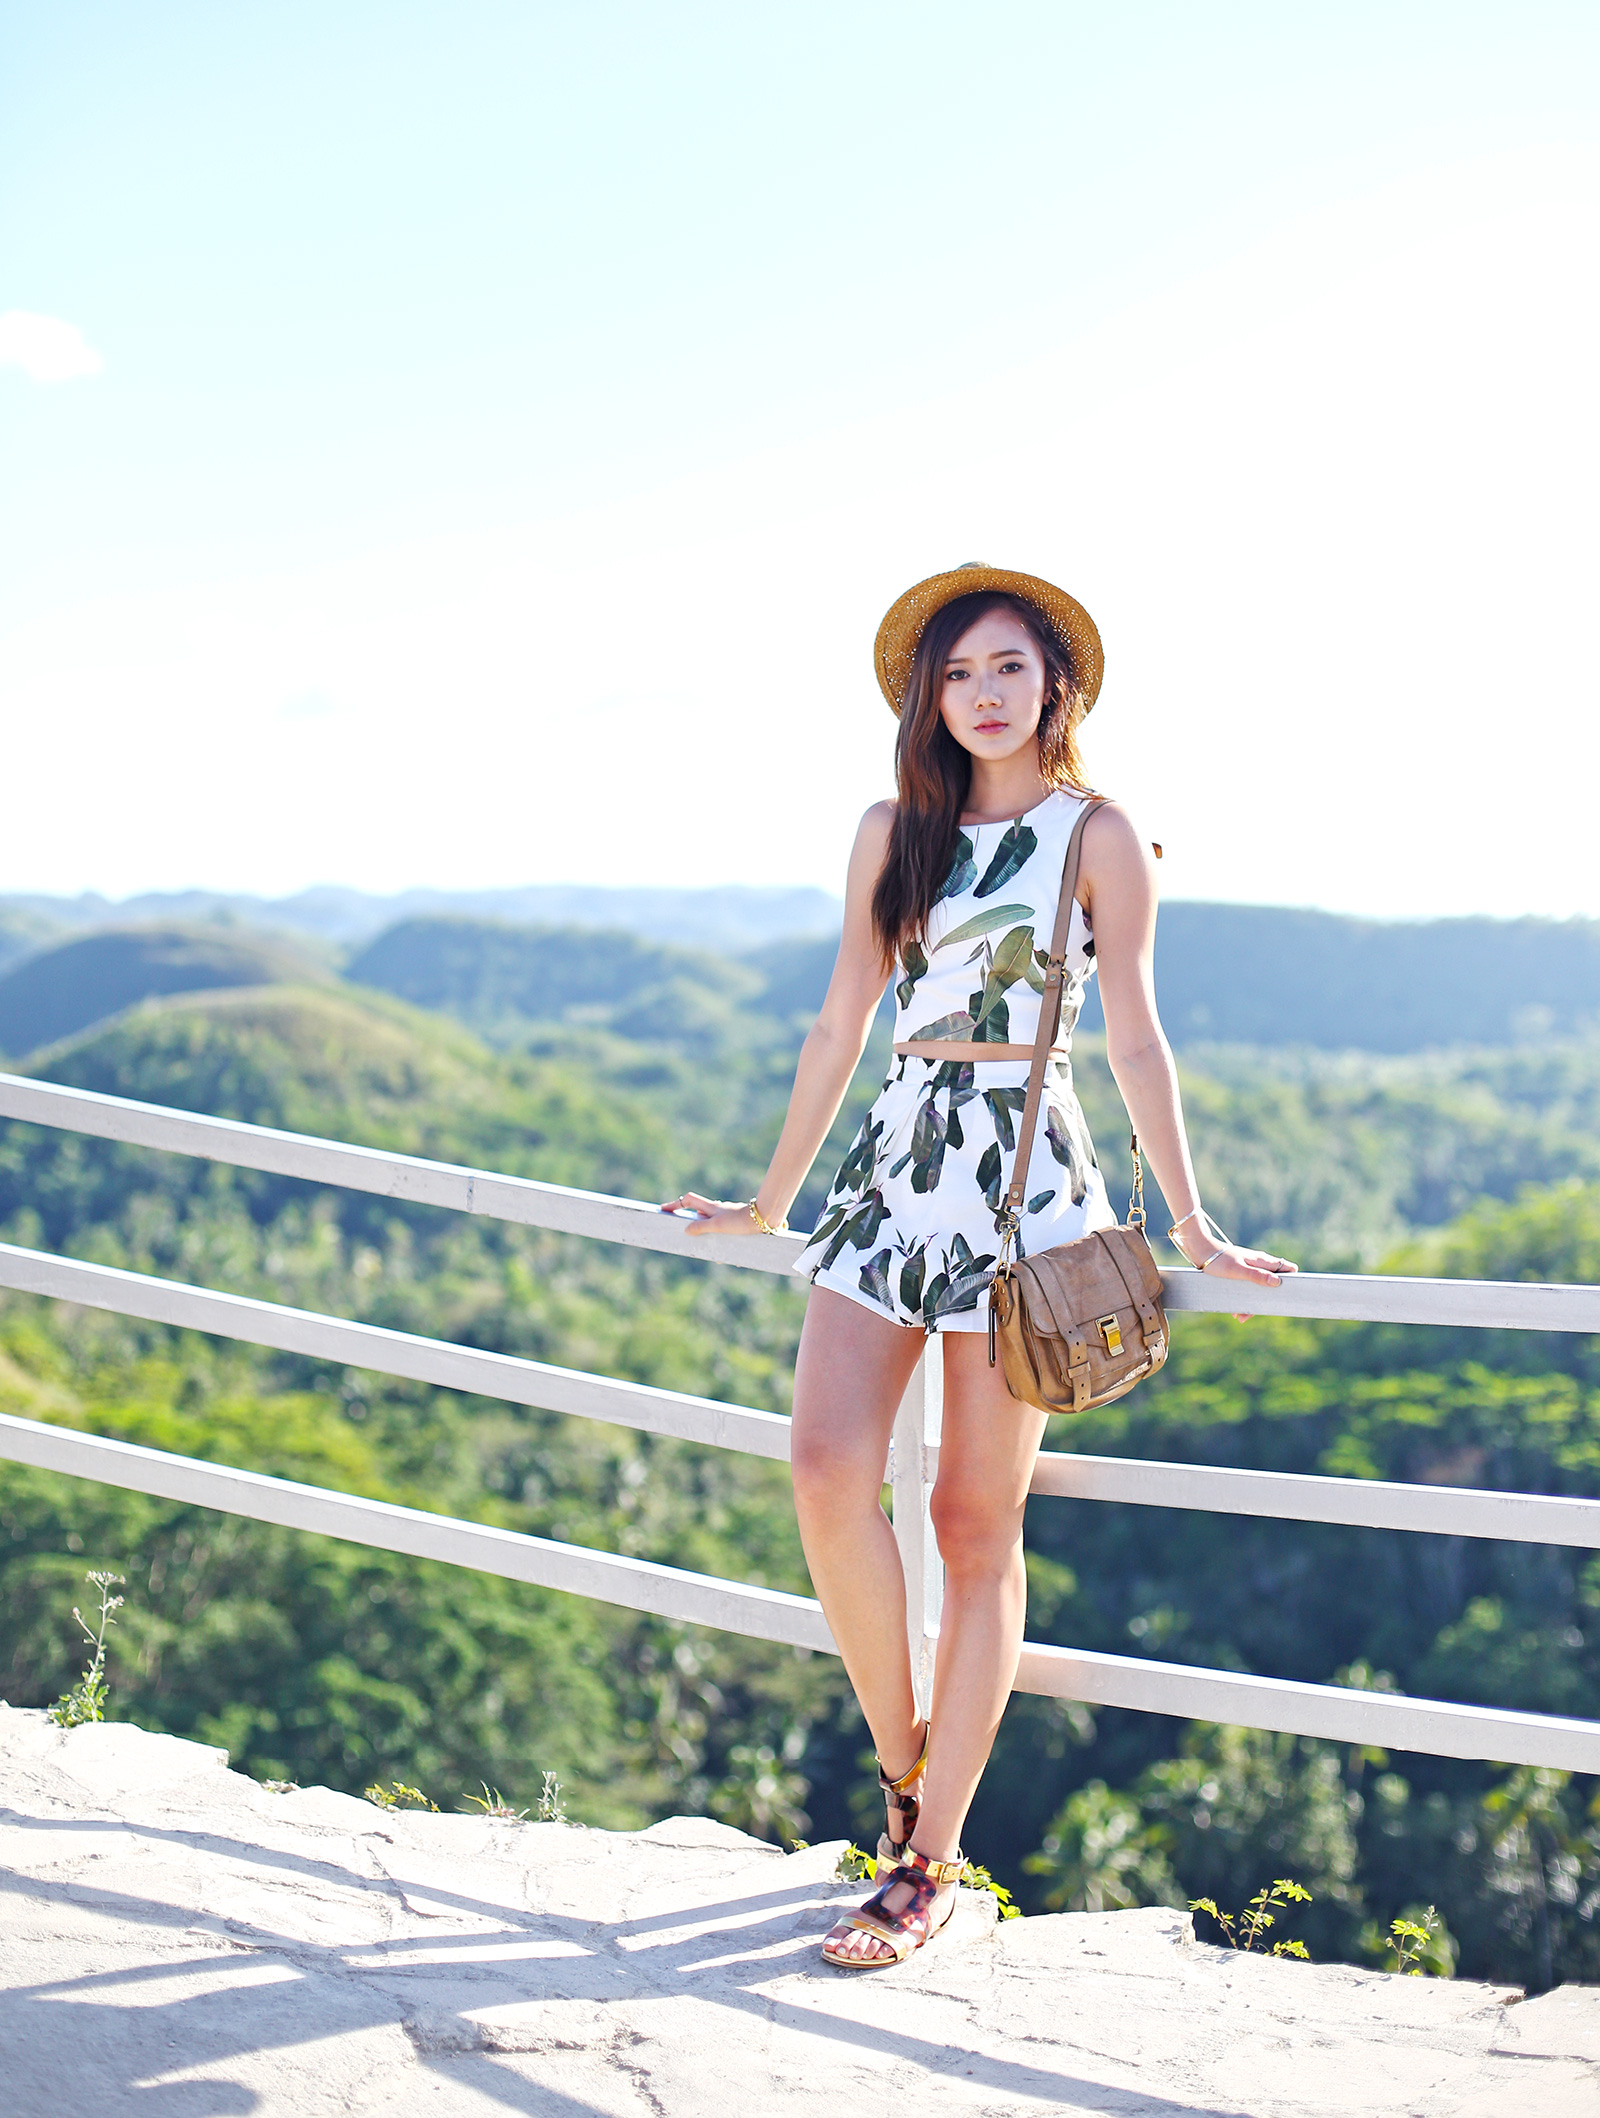 95244f2392 Her Fashion Box Outfit At Chocolate Hills - Camille Tries To Blog ...